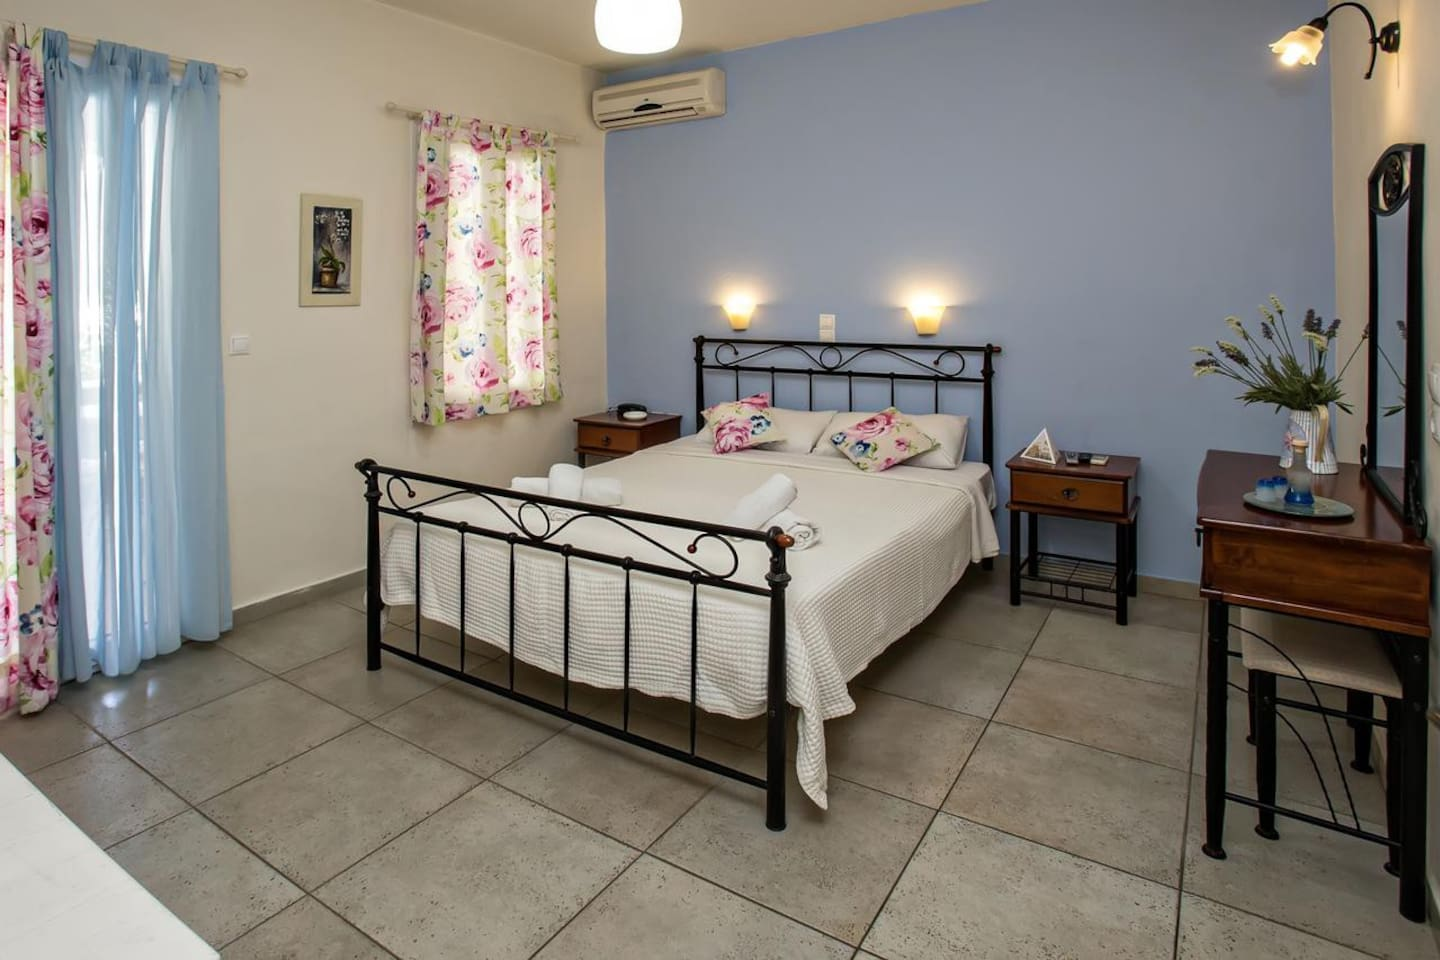 Double room in Tinos Hotel